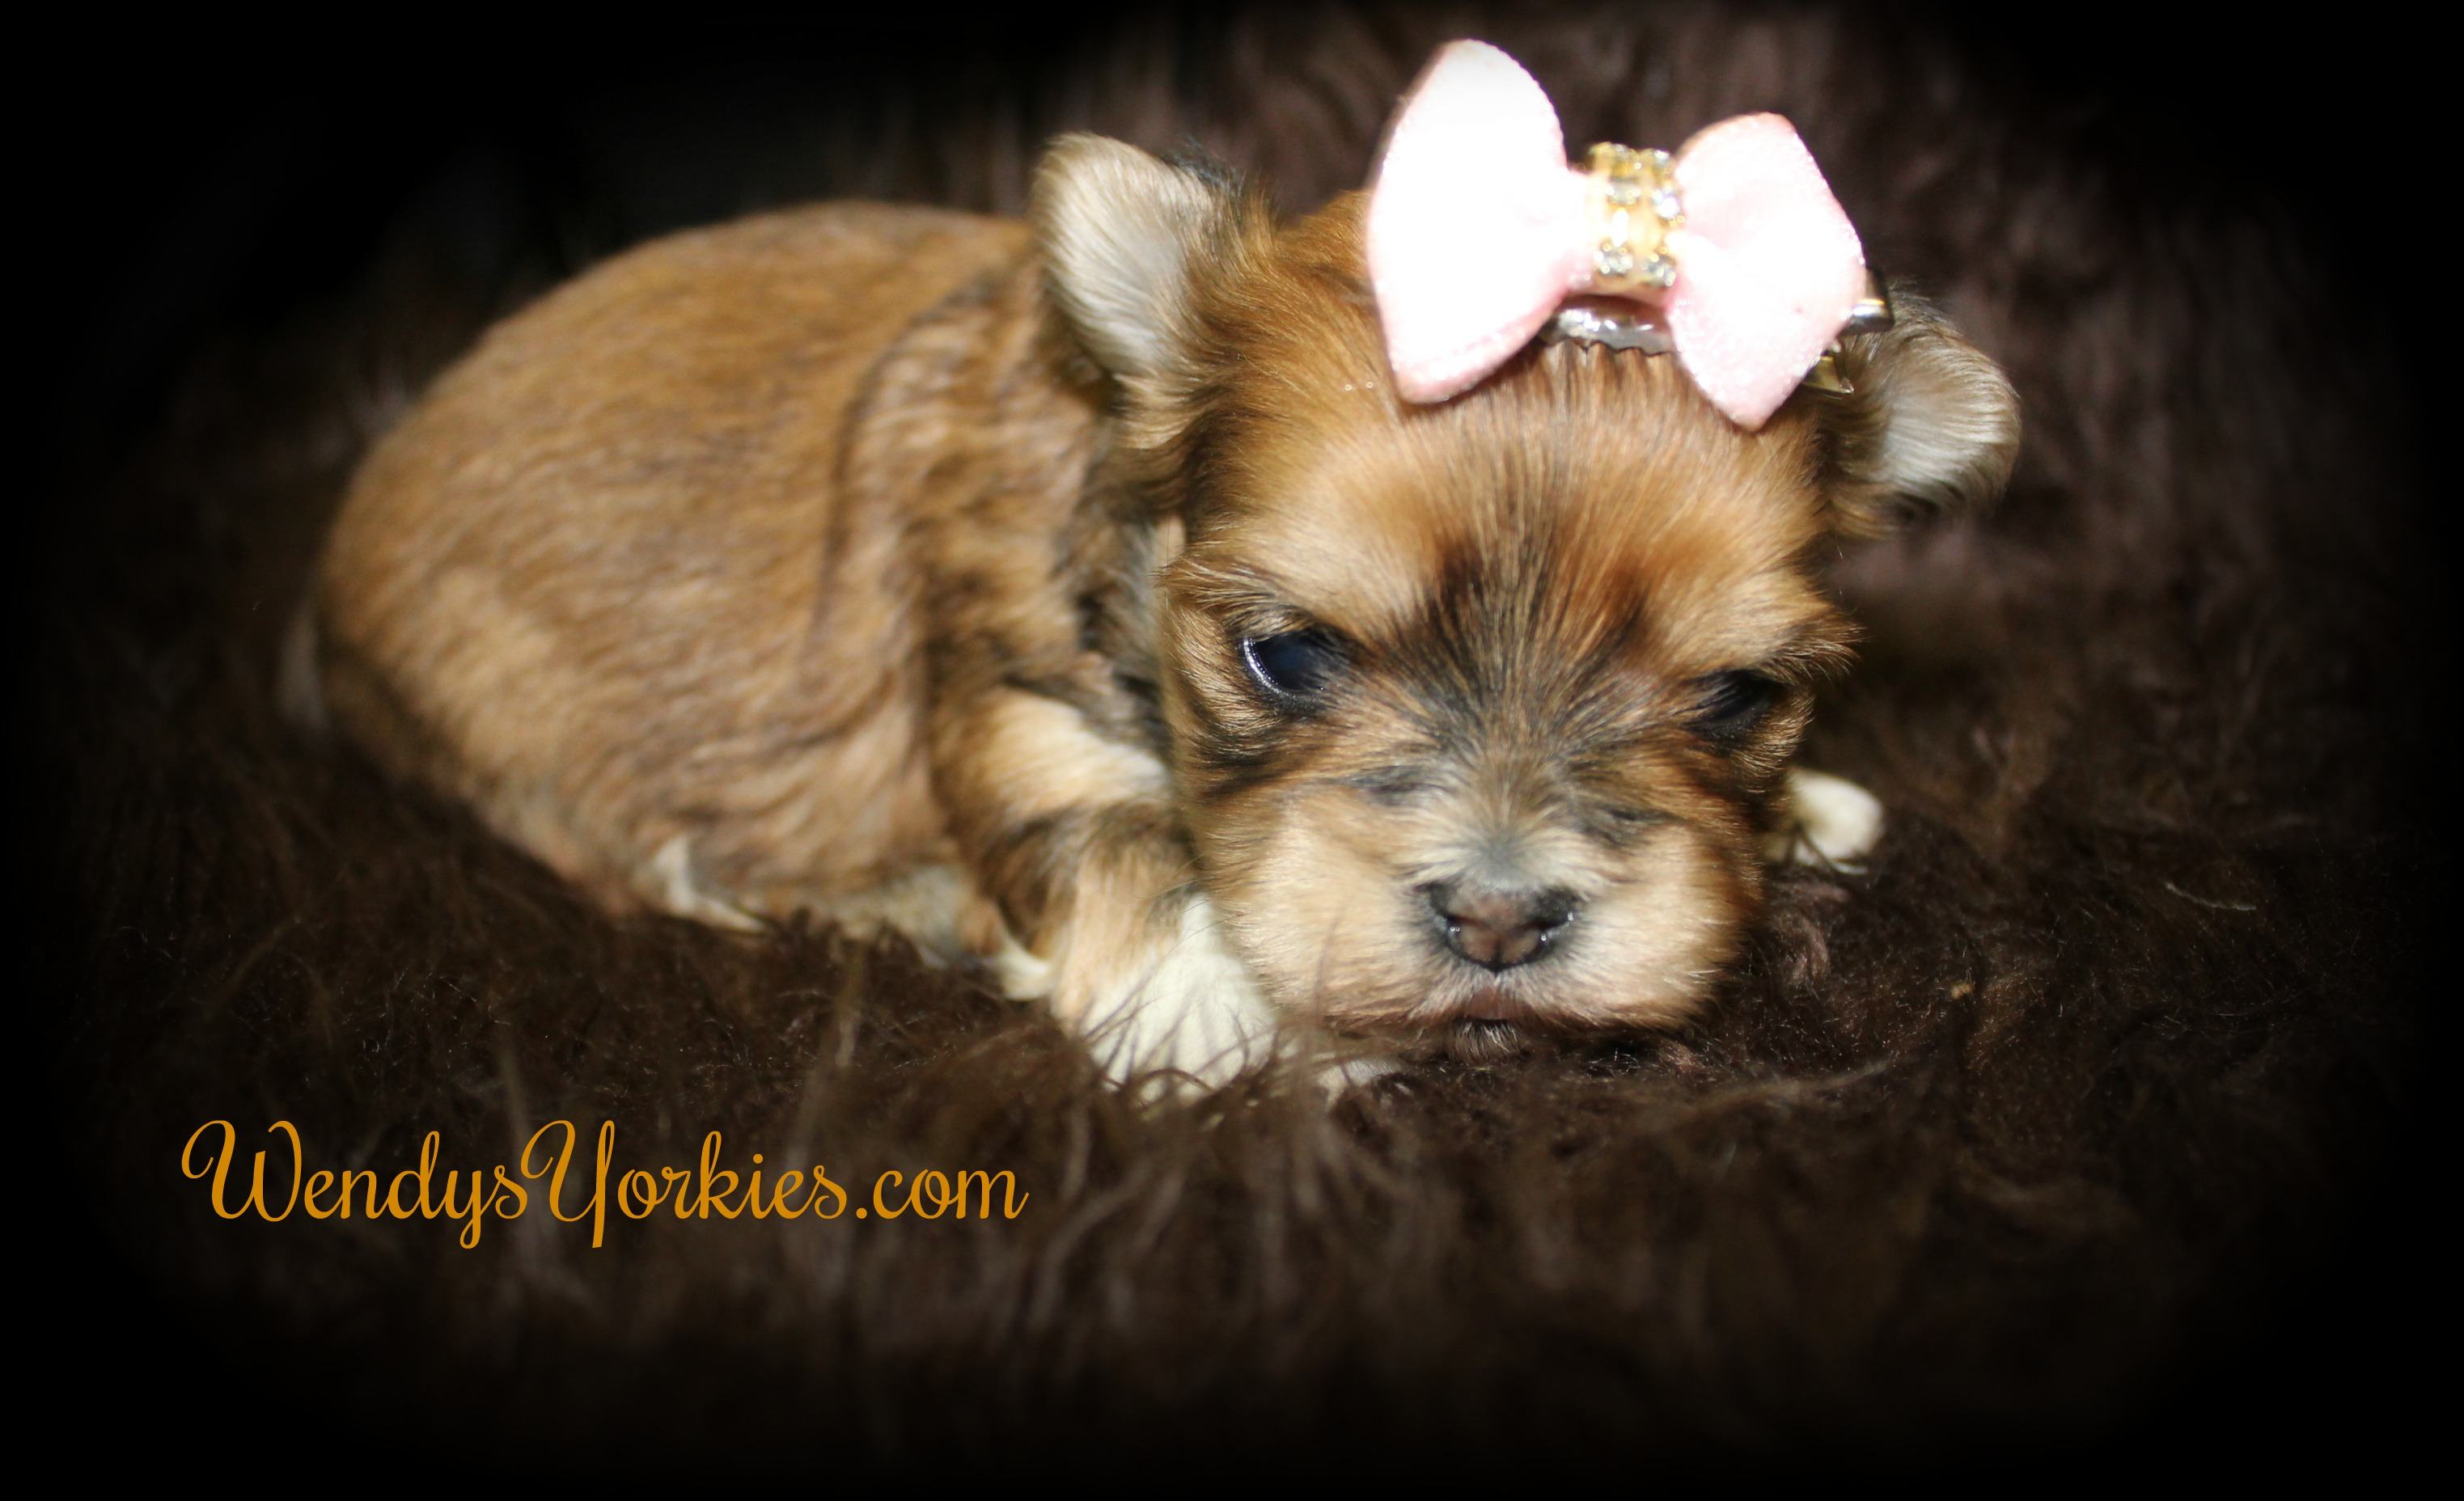 Morkie puppy for sale, WendysYorkies.com, Golden Female